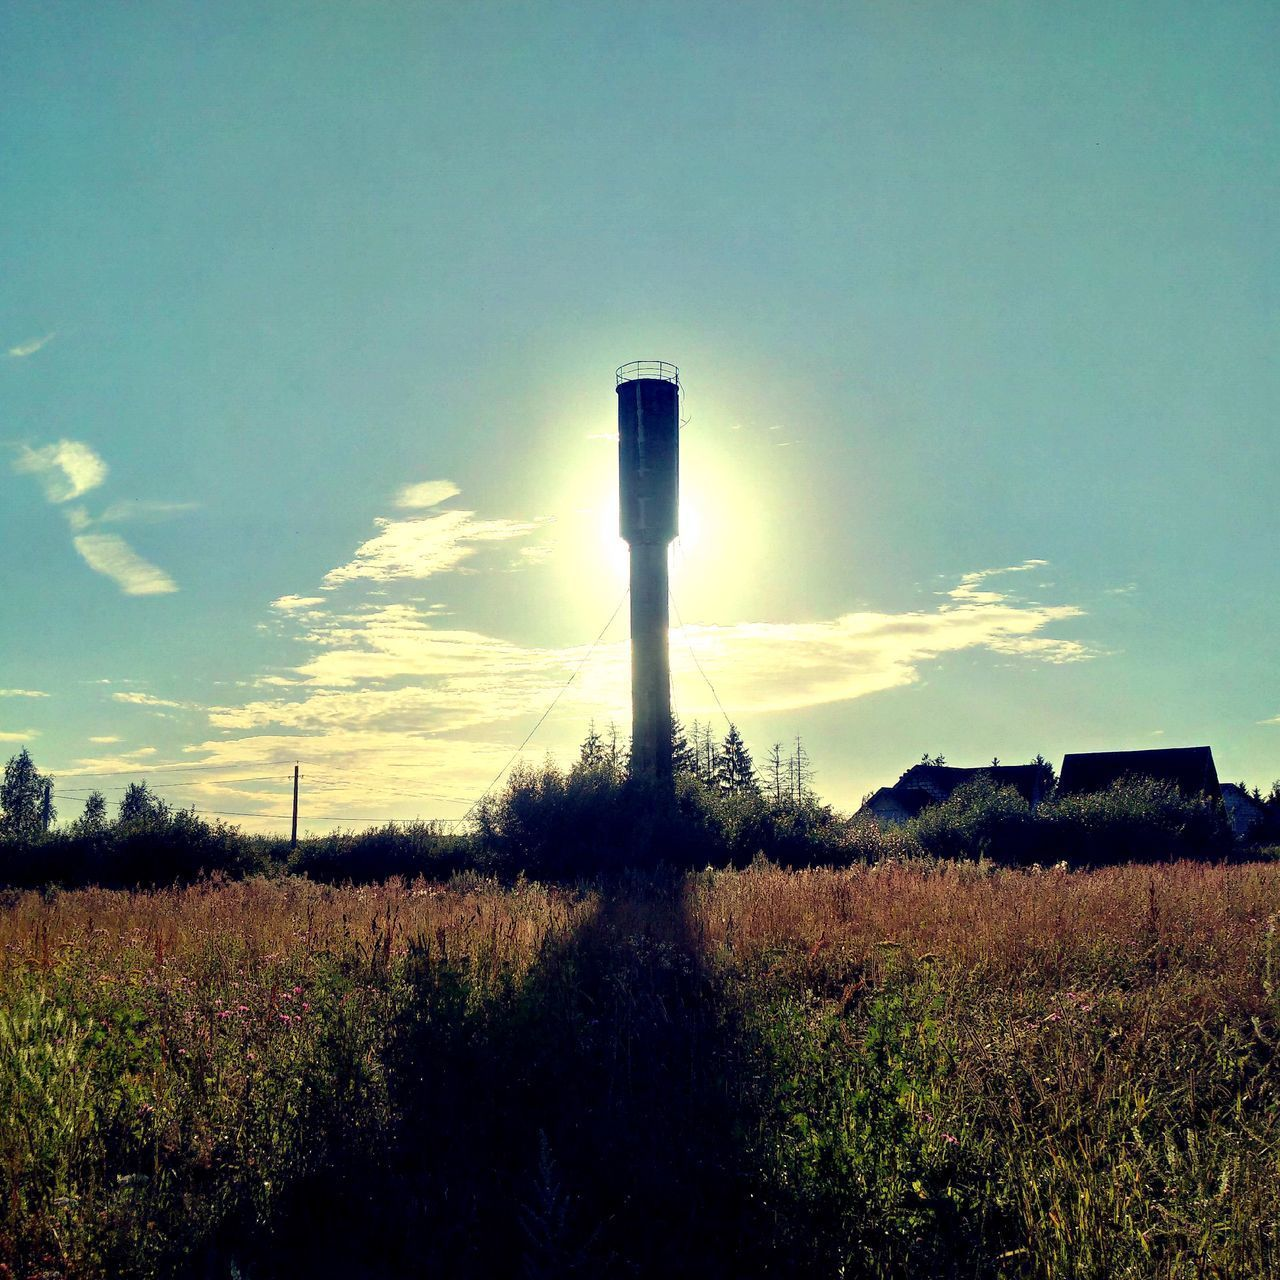 industry, sky, field, agriculture, landscape, no people, tranquil scene, nature, growth, tranquility, day, scenics, factory, outdoors, tree, beauty in nature